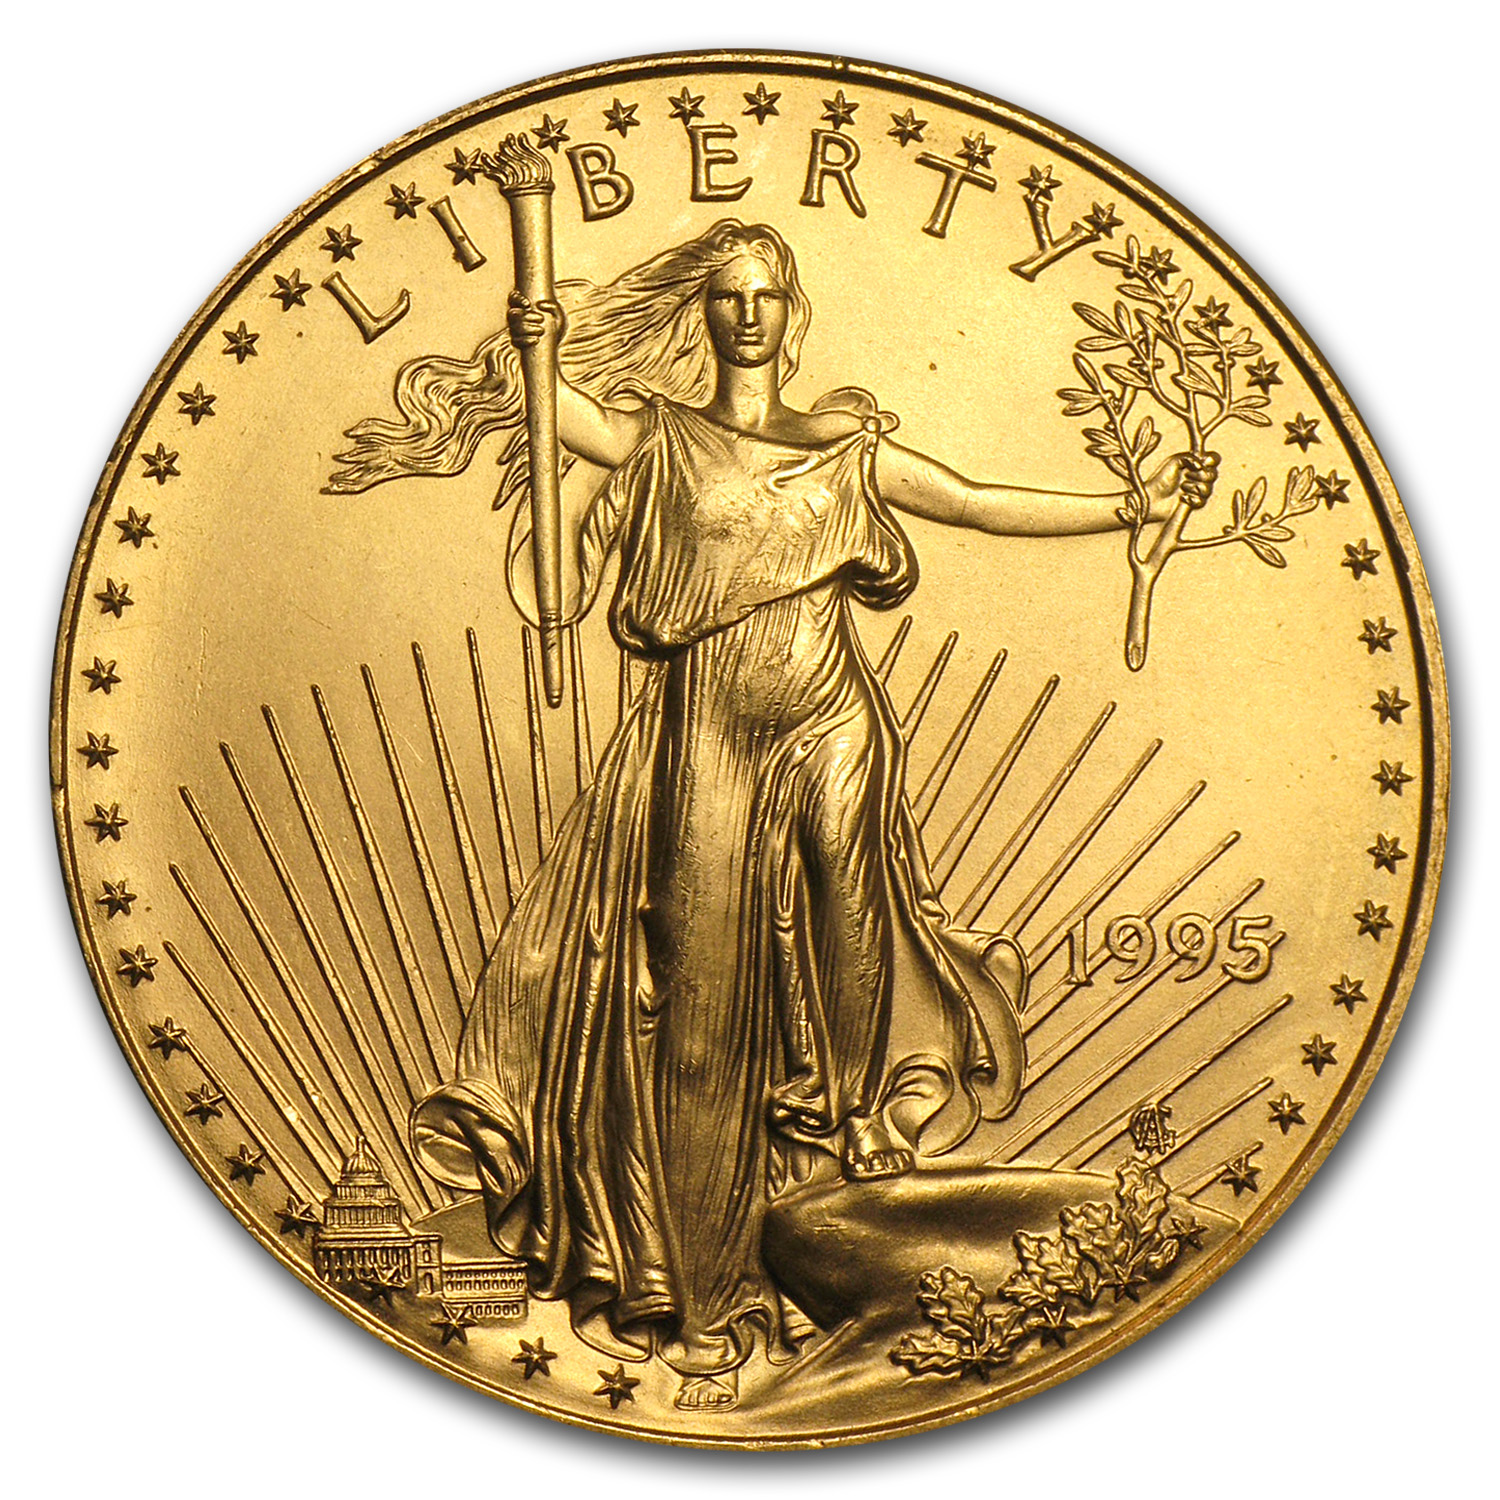 1995 1 oz Gold American Eagle BU